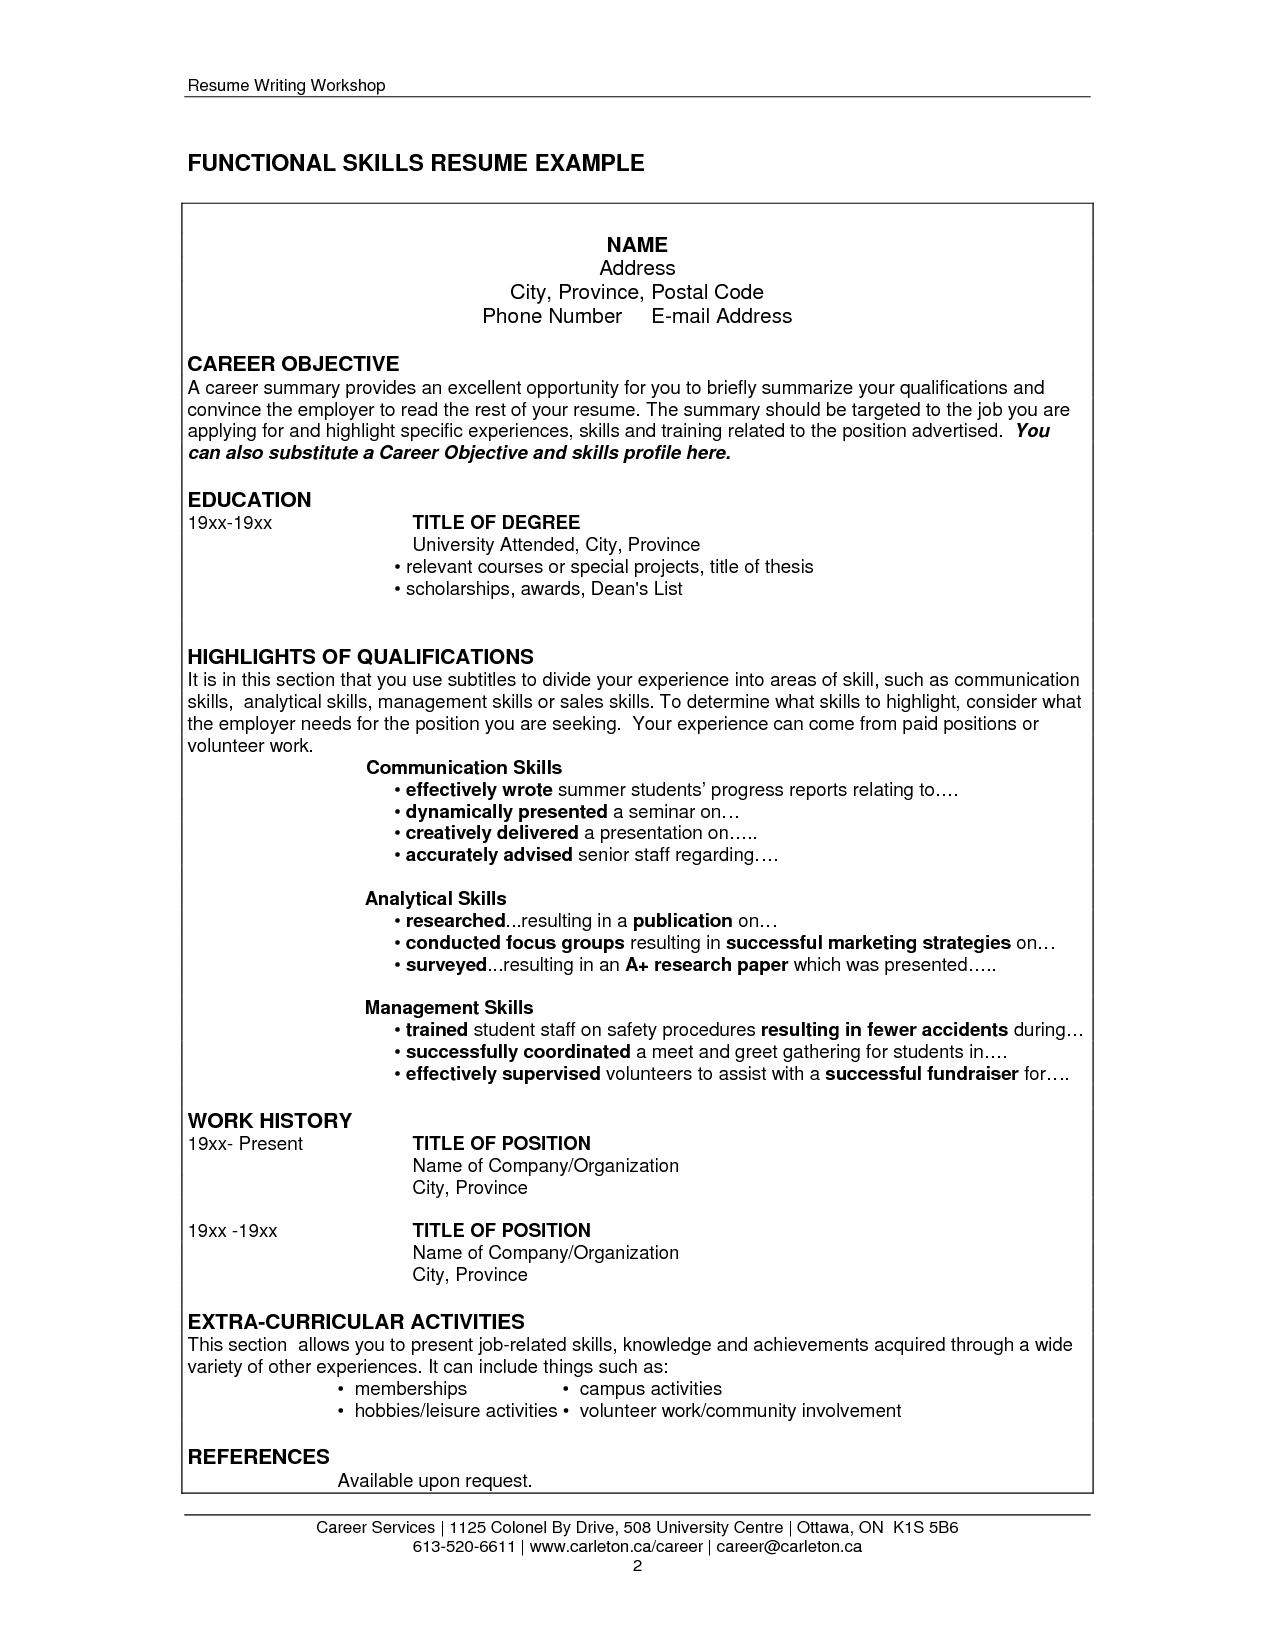 Skills | 3-Resume Format | Pinterest | Sample resume format, Resume ...